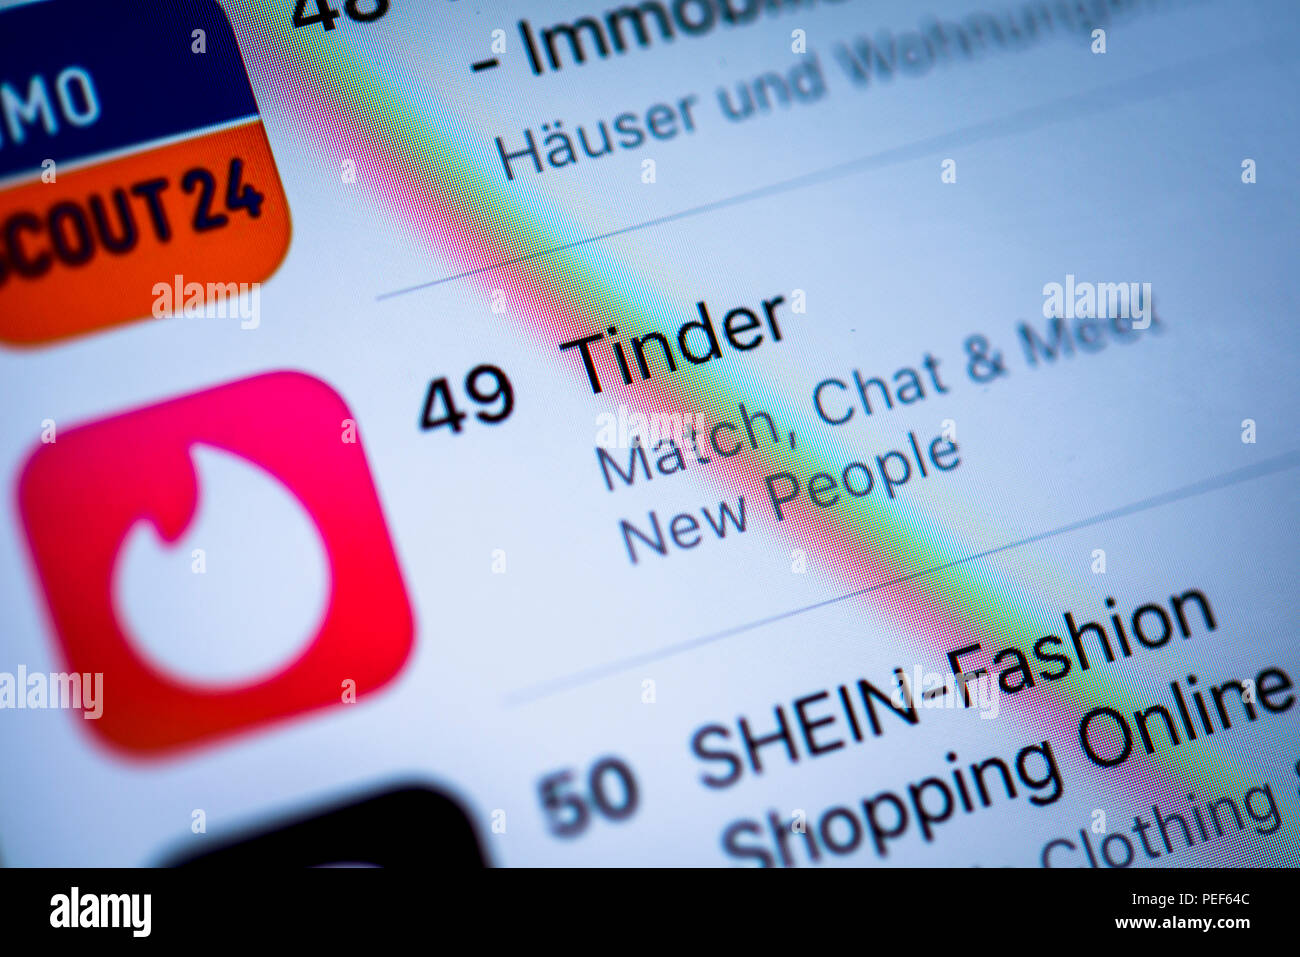 Dating-App nur für iphone